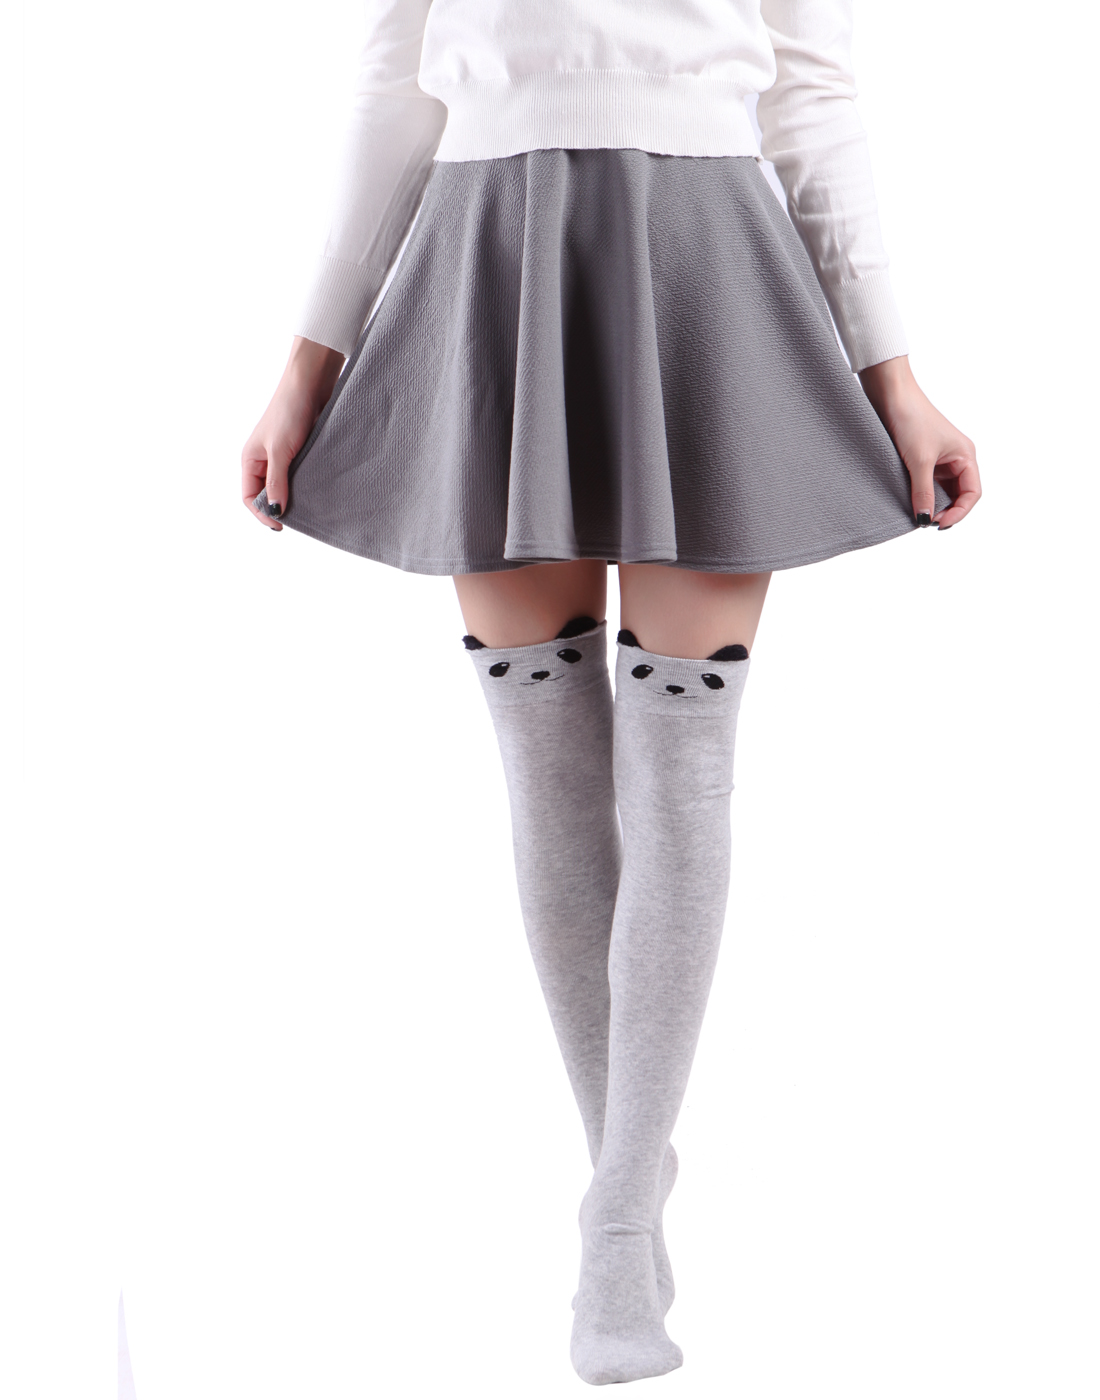 929cde67c52 HDE - HDE Women s Animal Over Knee Thigh High Socks Stockings with Ears  (Gray Bear) - Walmart.com